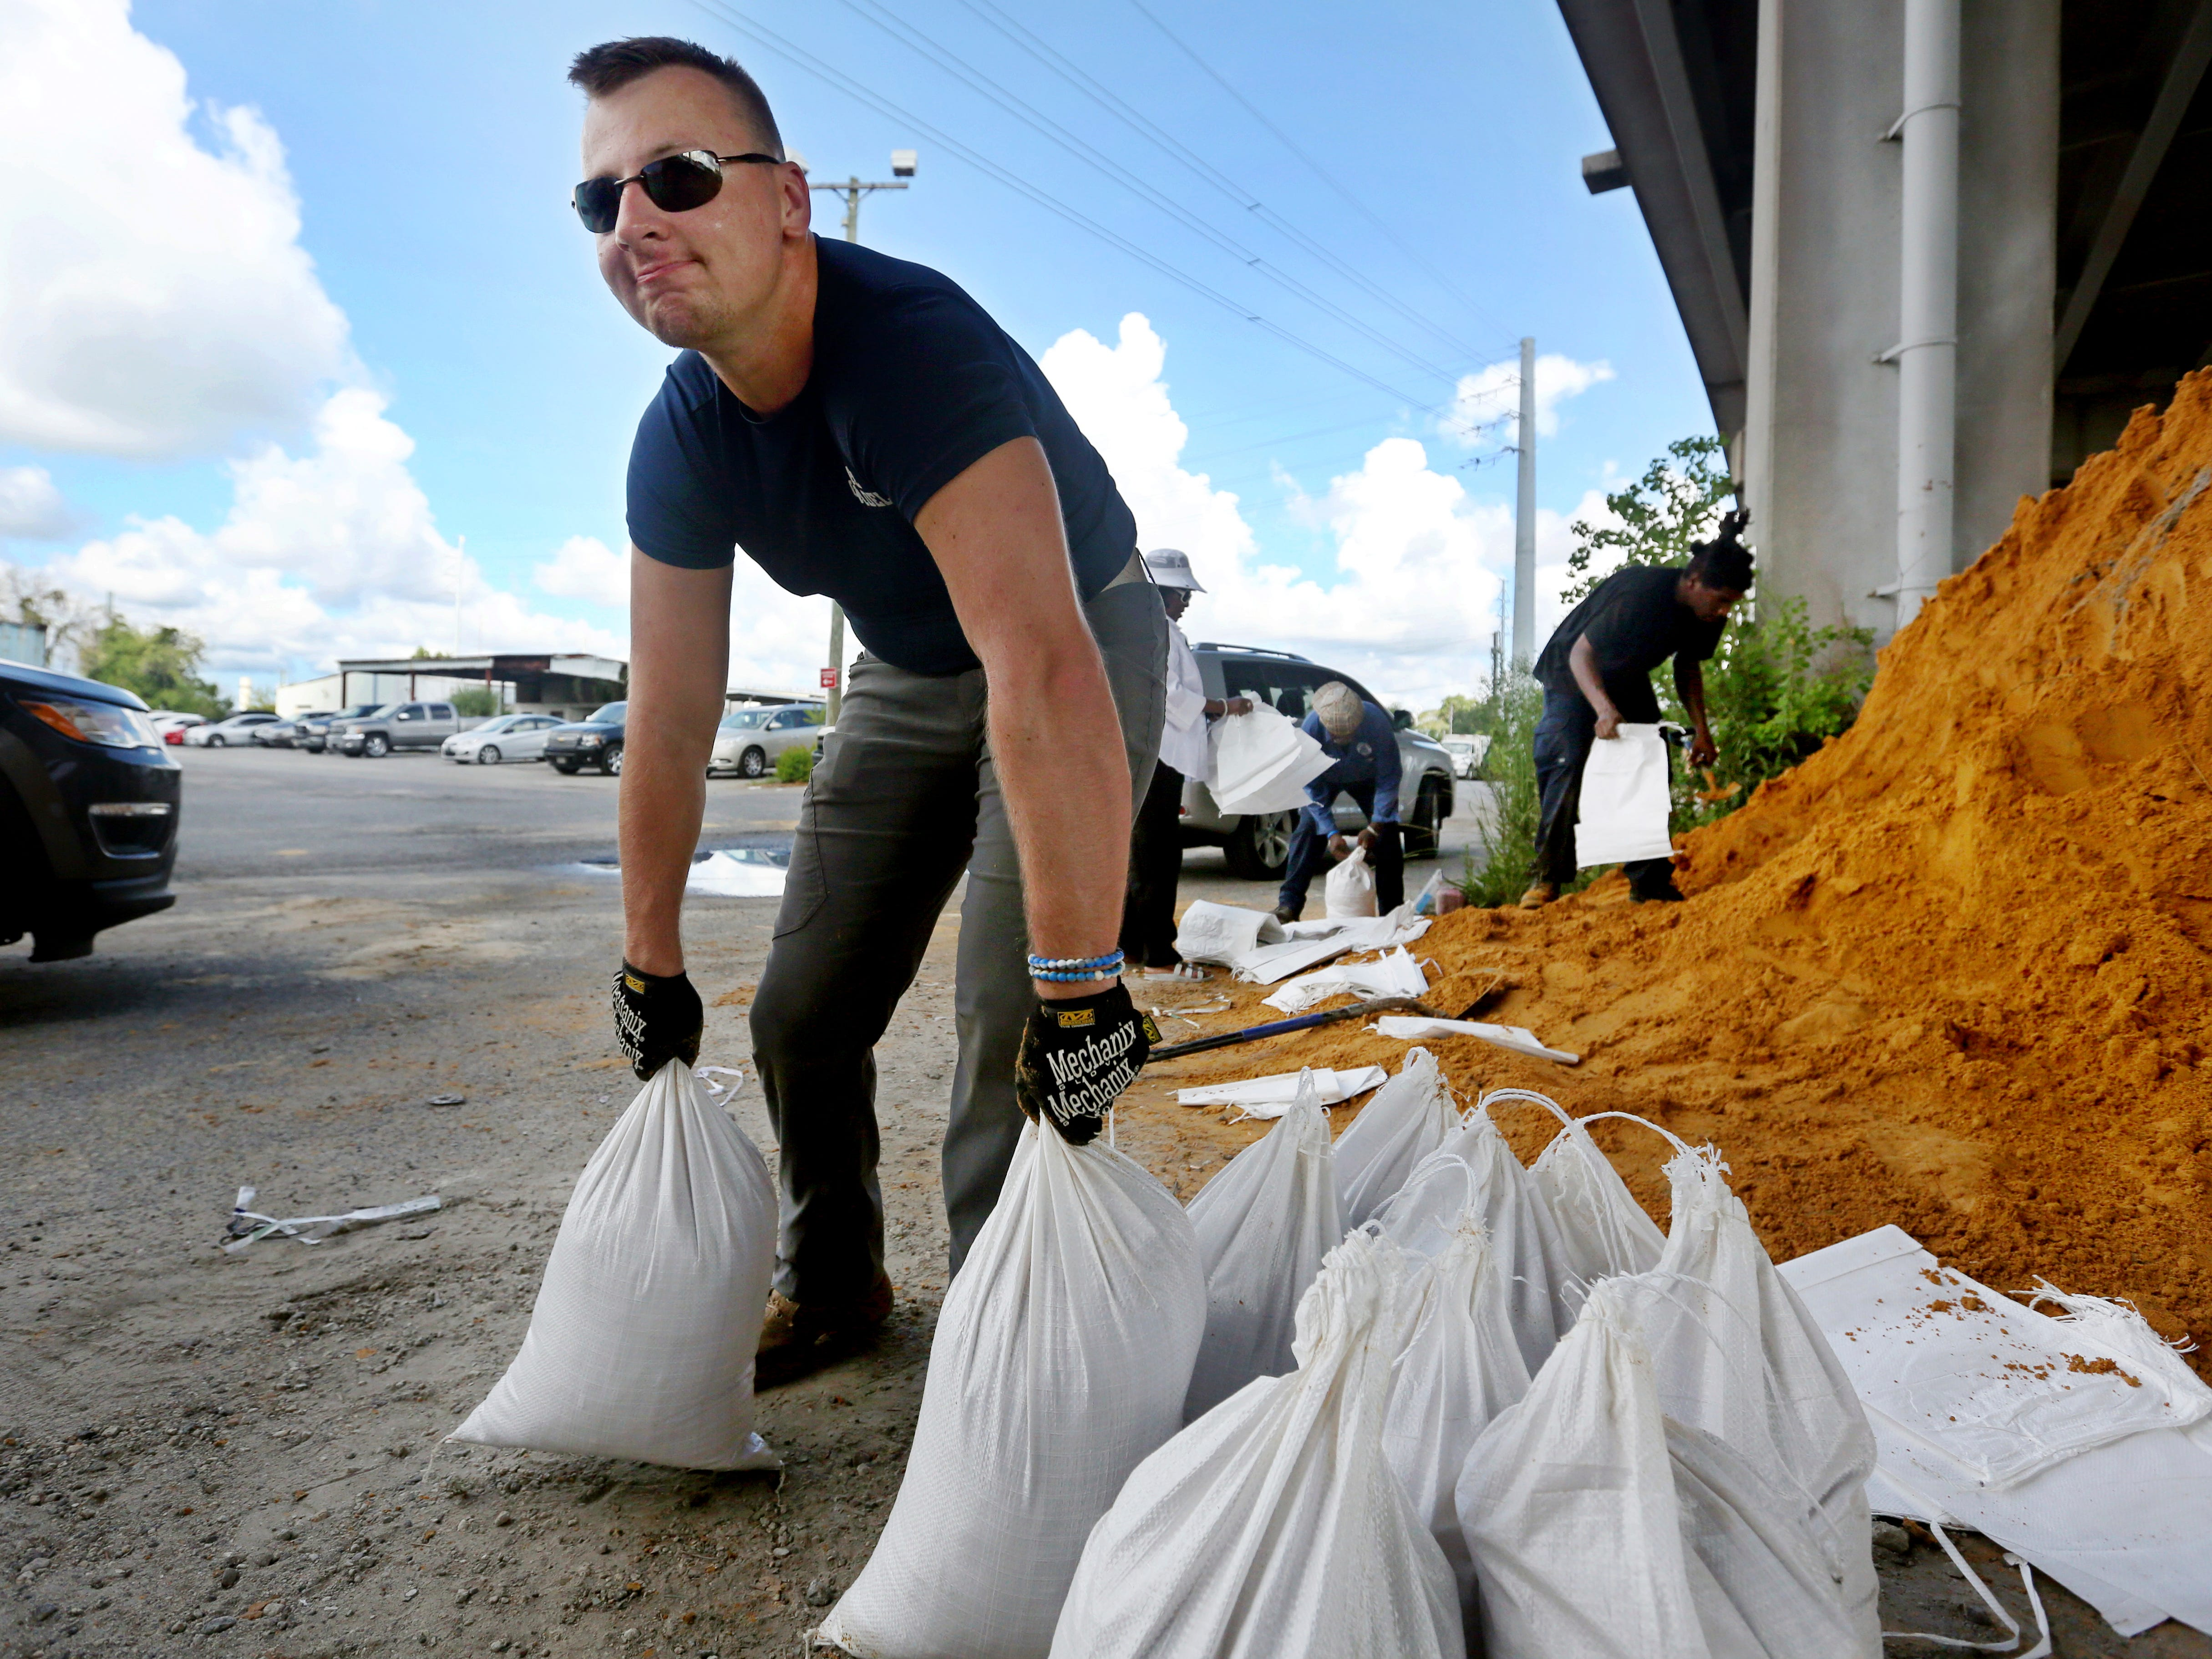 Kevin Orth loads sandbags into cars on Milford Street as he helps residents prepare for Hurricane Florence, Monday, Sept. 10, 2018, in Charleston, S.C.